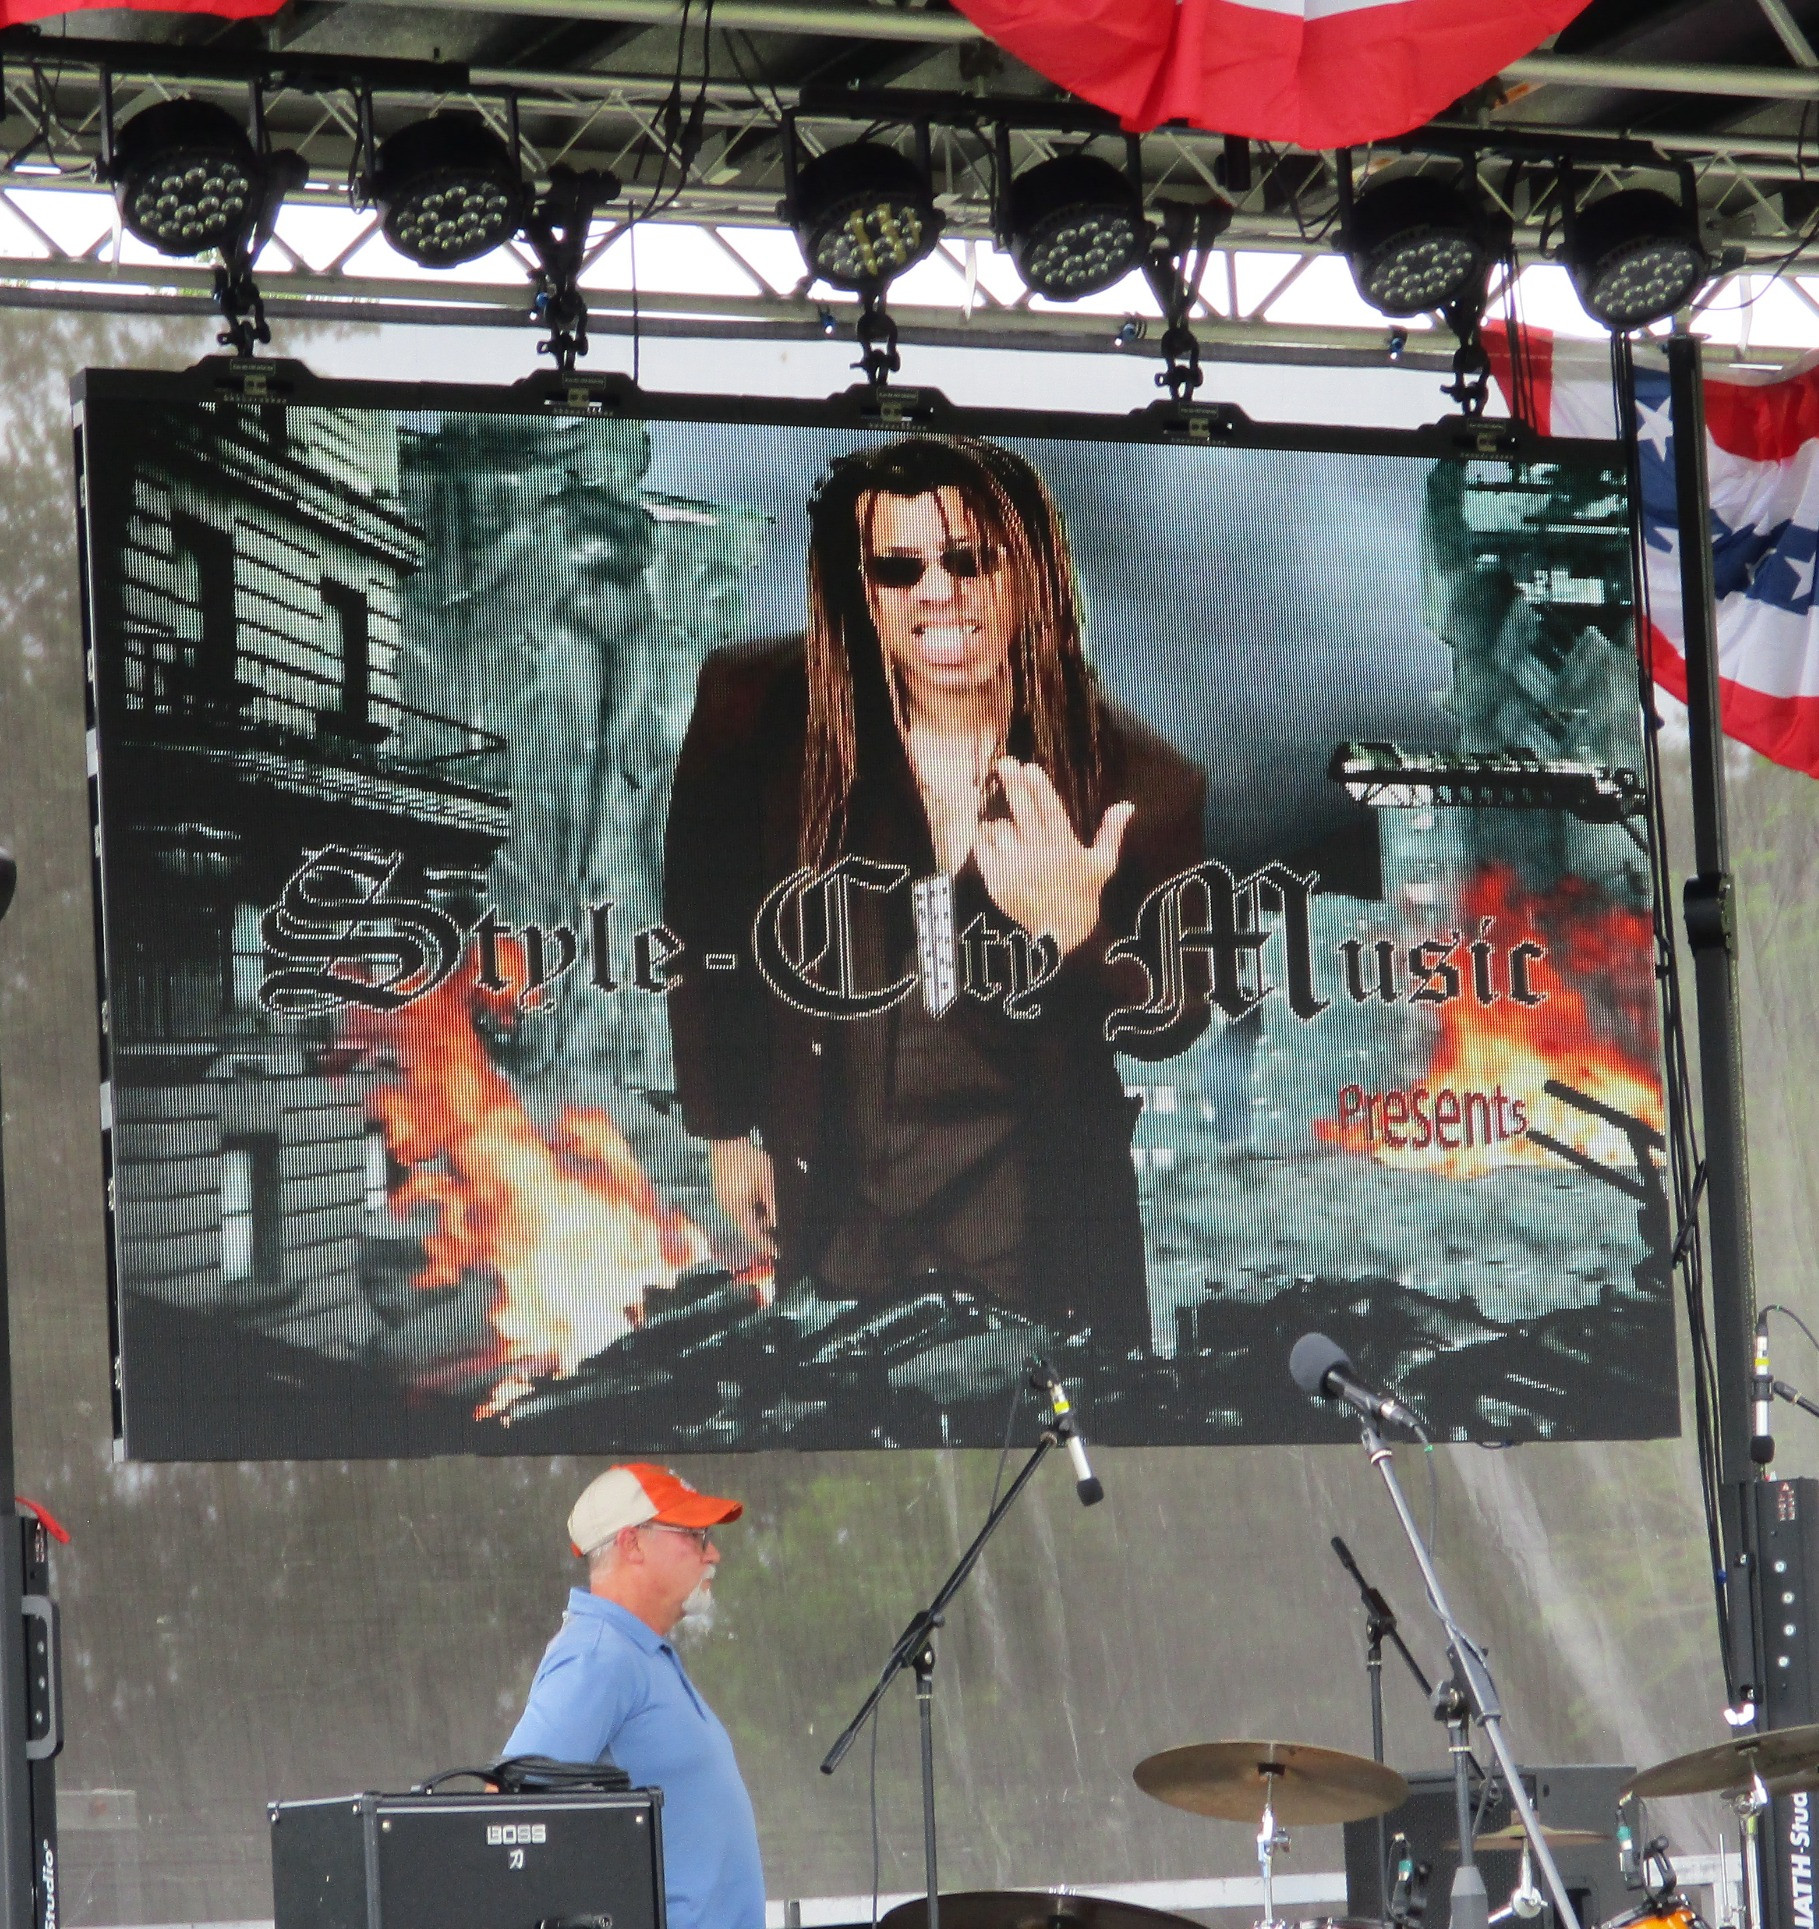 VIDEO -  6' x 10'wall (OUTDOOR EVENT)